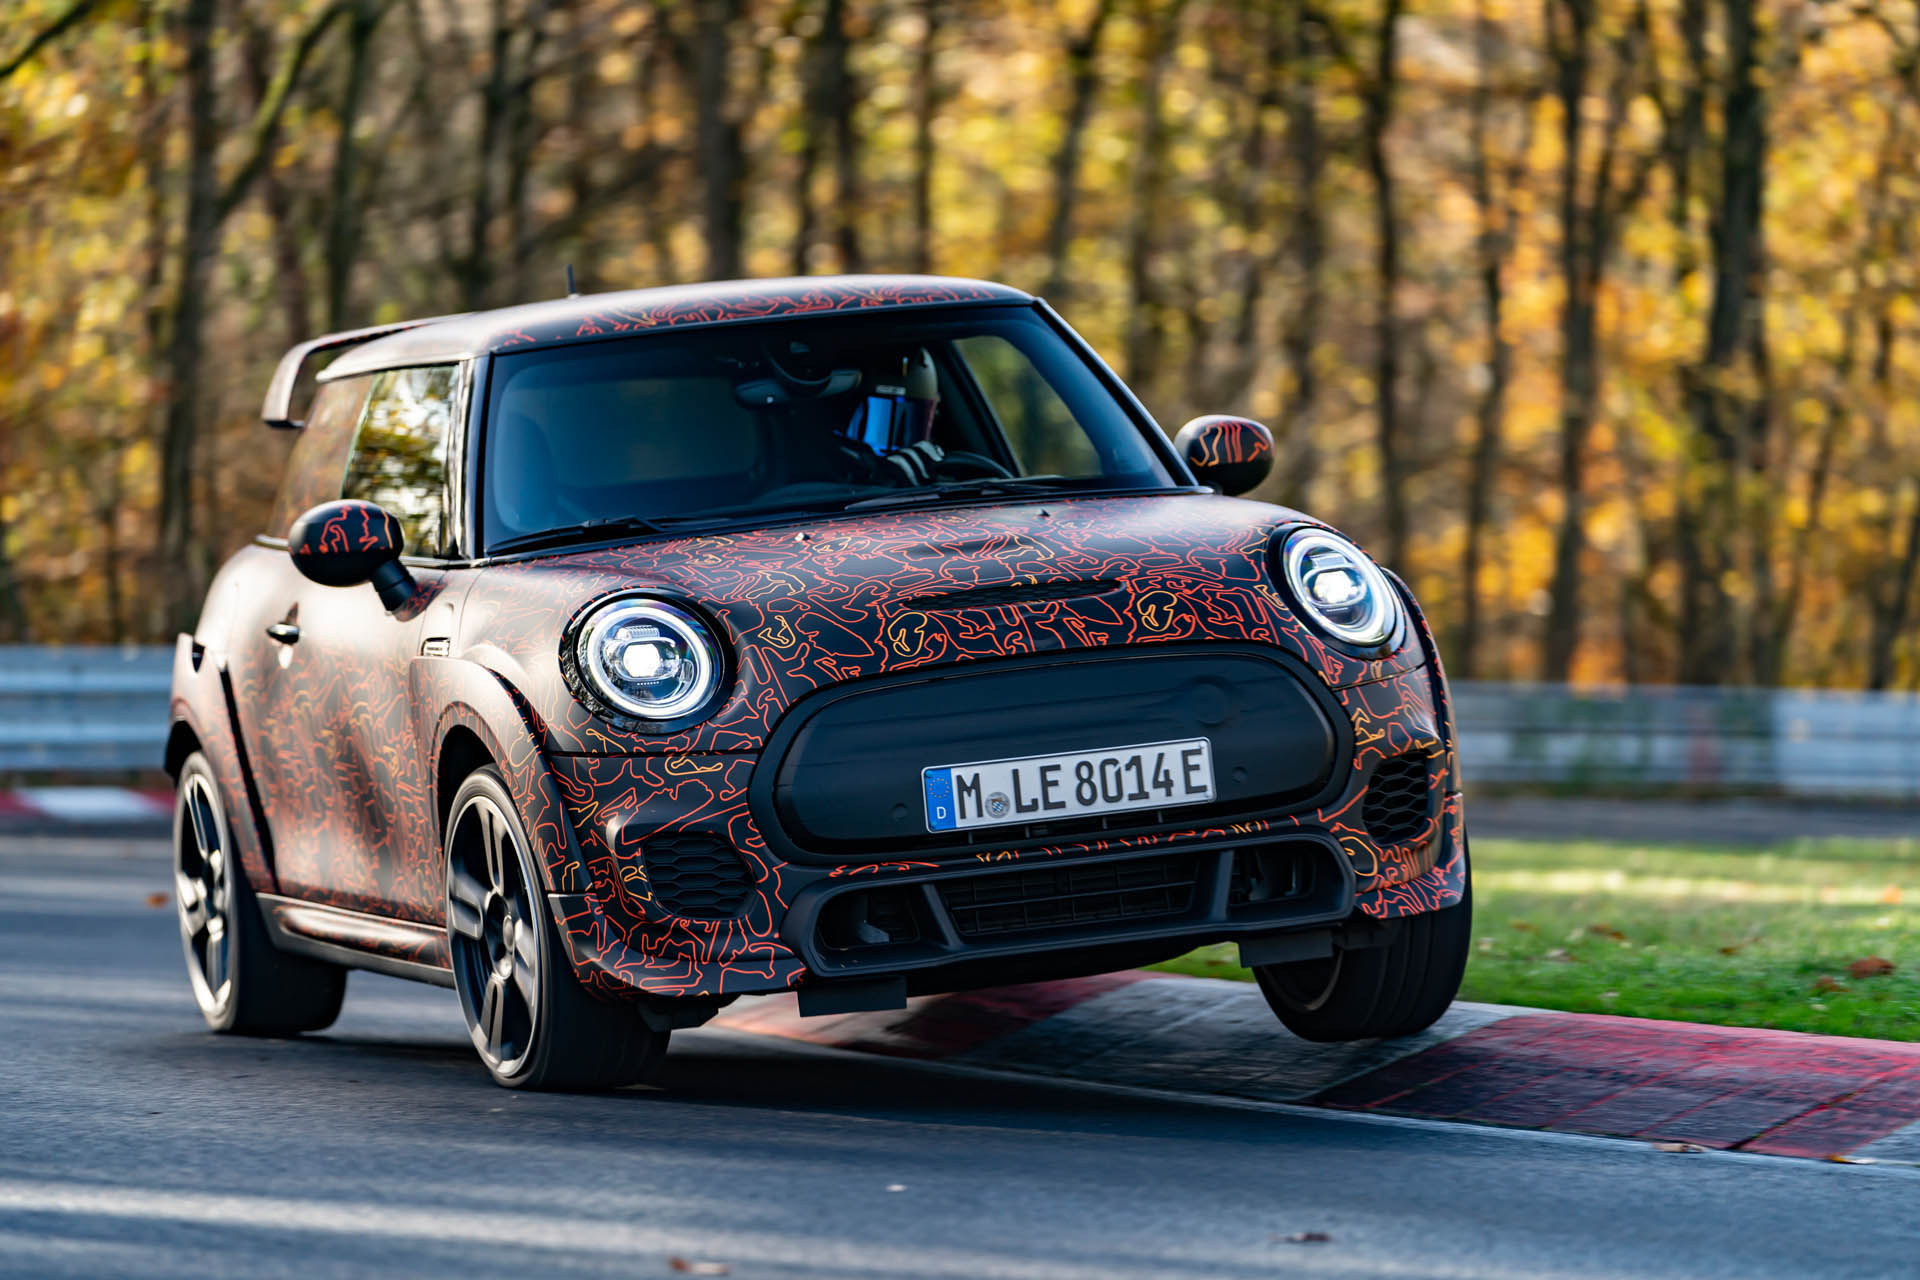 MINI John Cooper Works Electrification